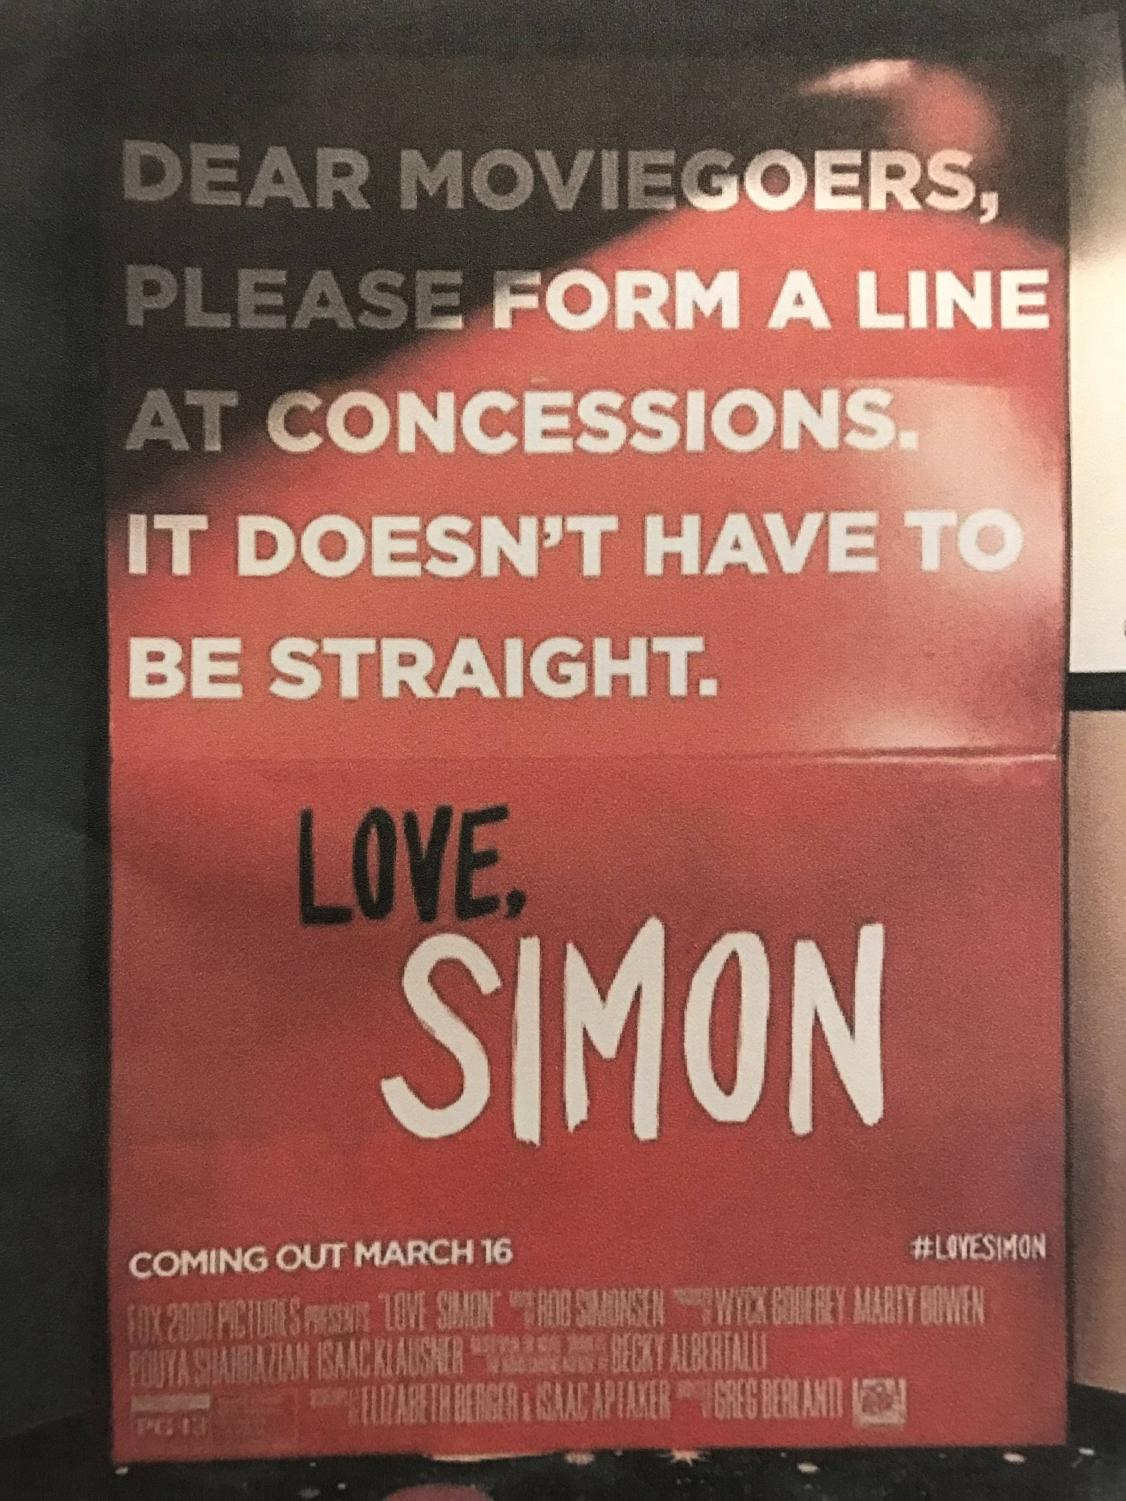 One of the many promotional posters for Love, Simon.